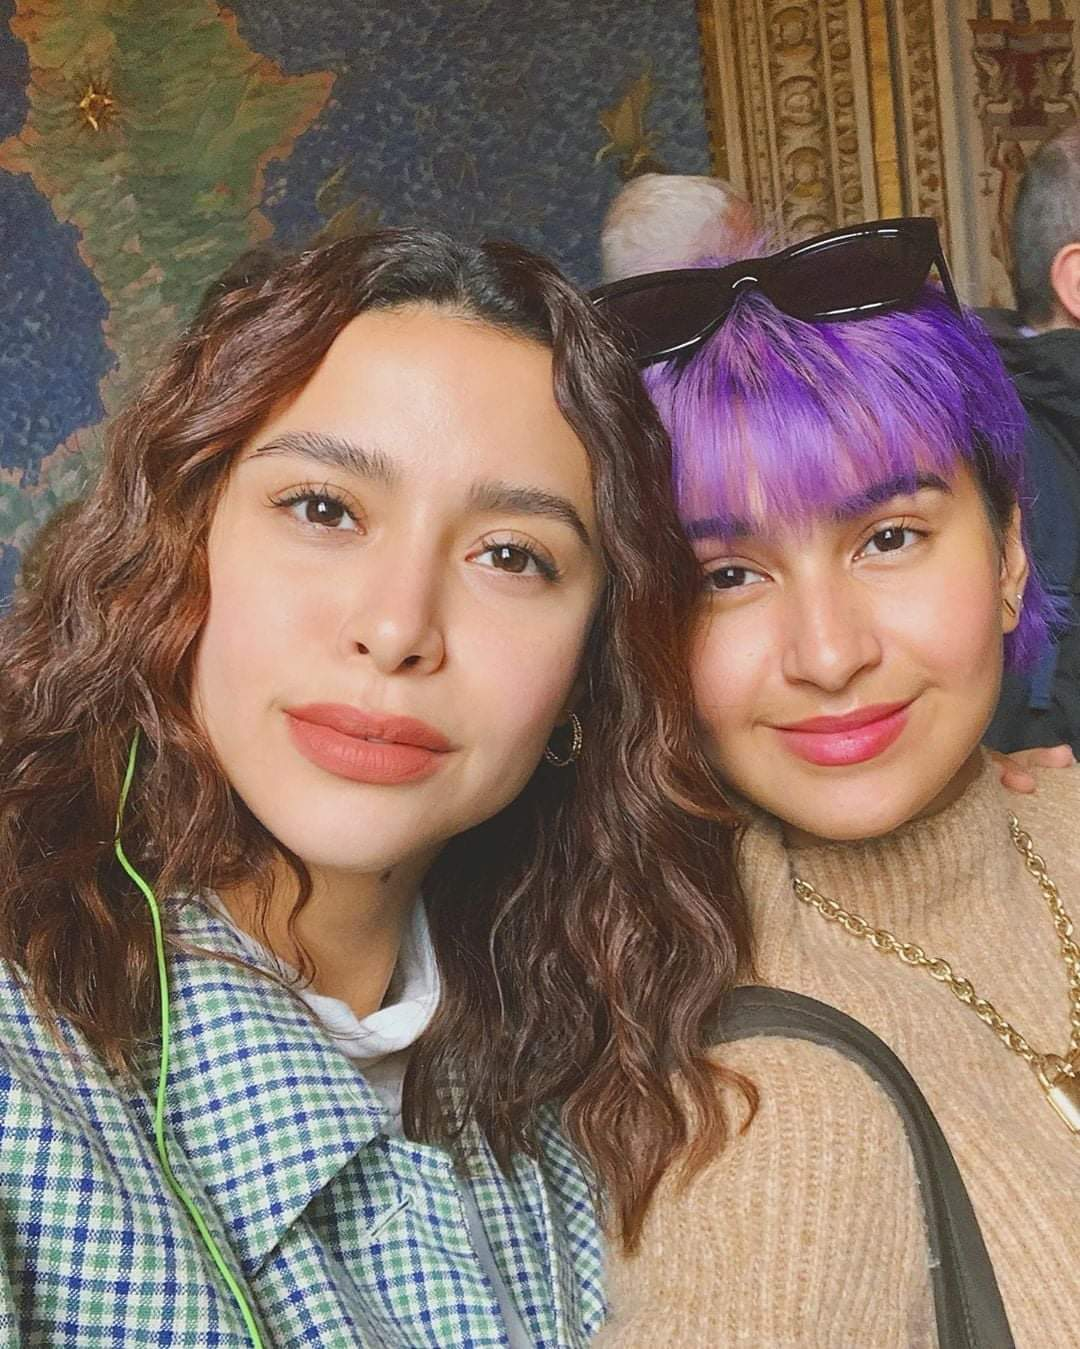 Yassi asks for respect